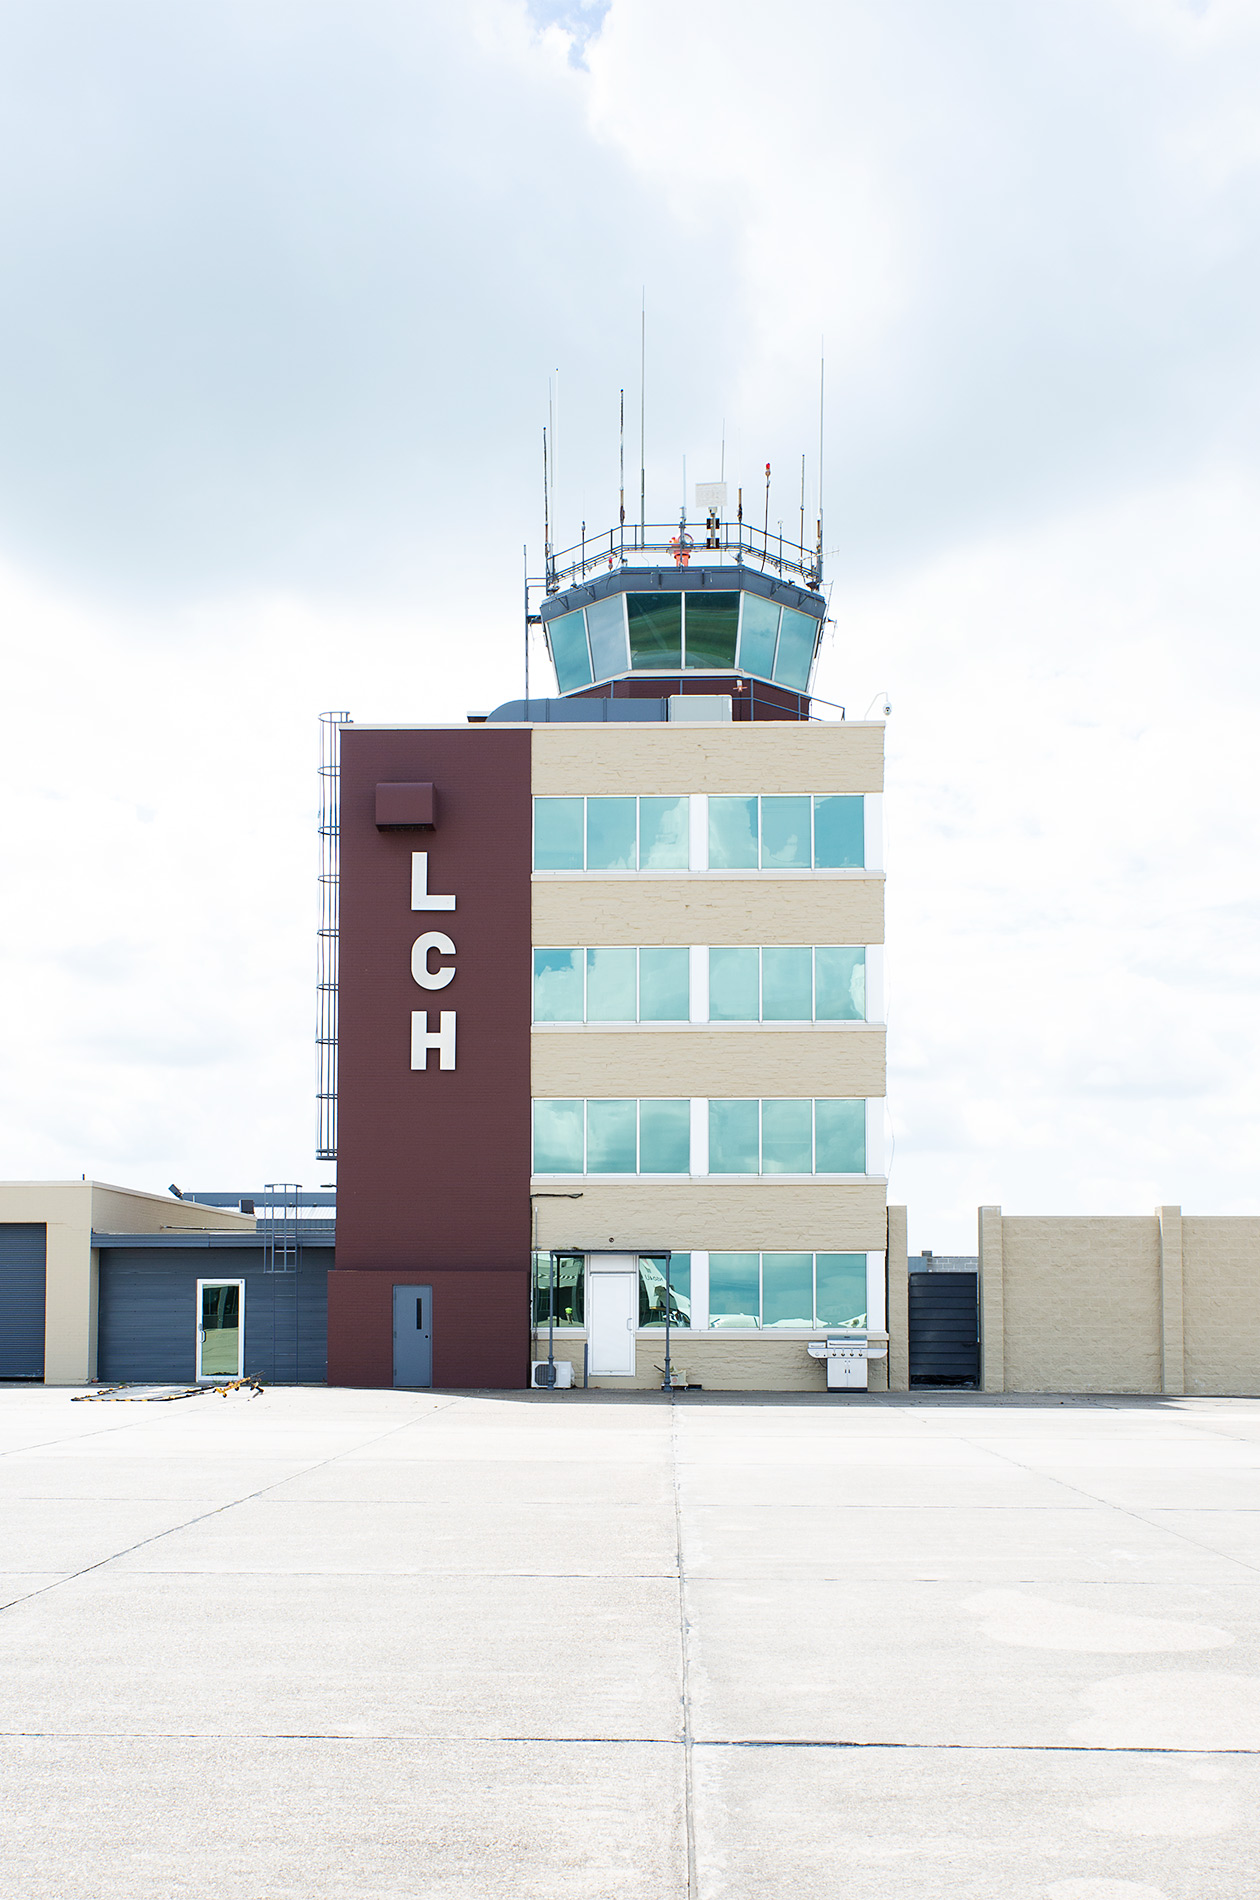 LCH Airport - Steve Craft Photography - Phoenix Arizona Travel Photographer